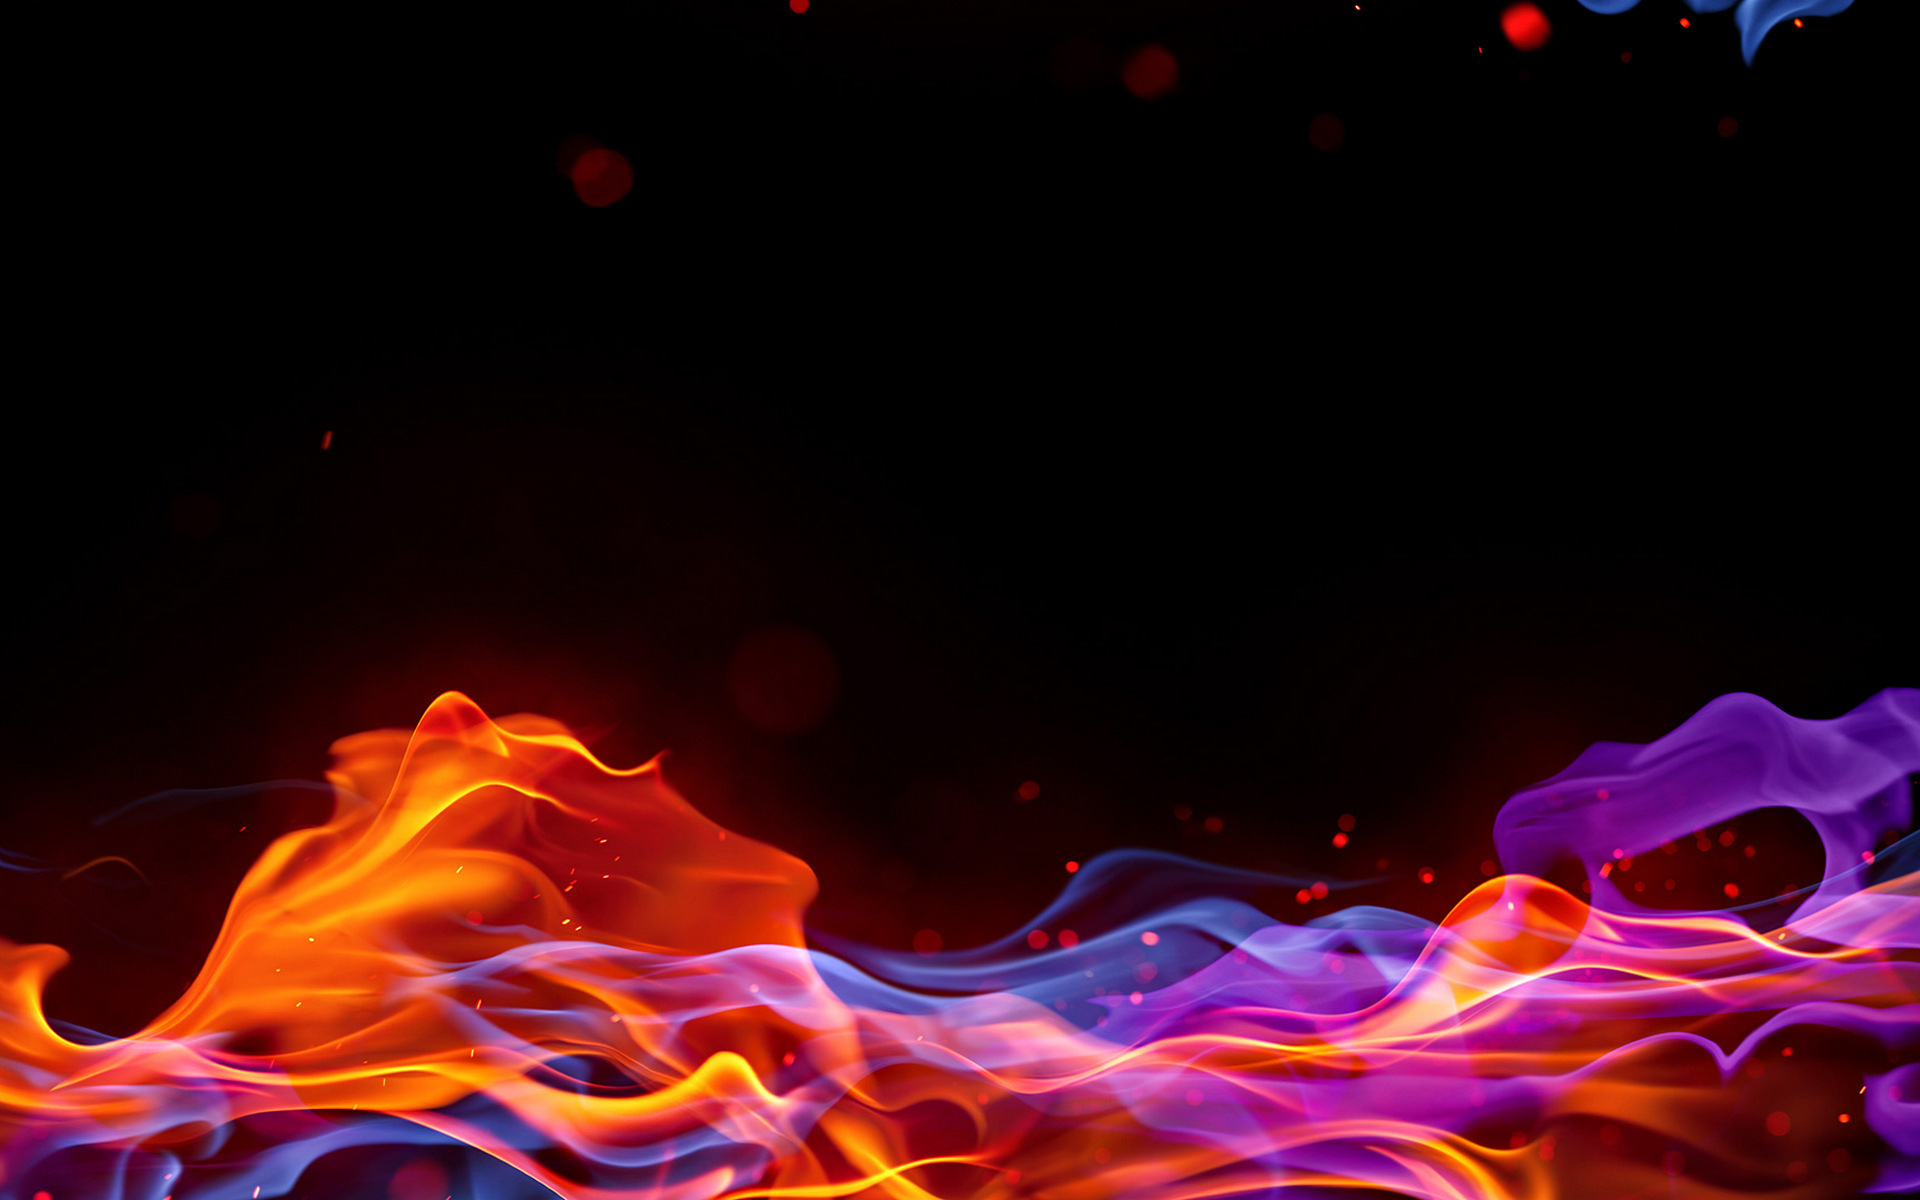 Abstract Fire Wallpaper HD